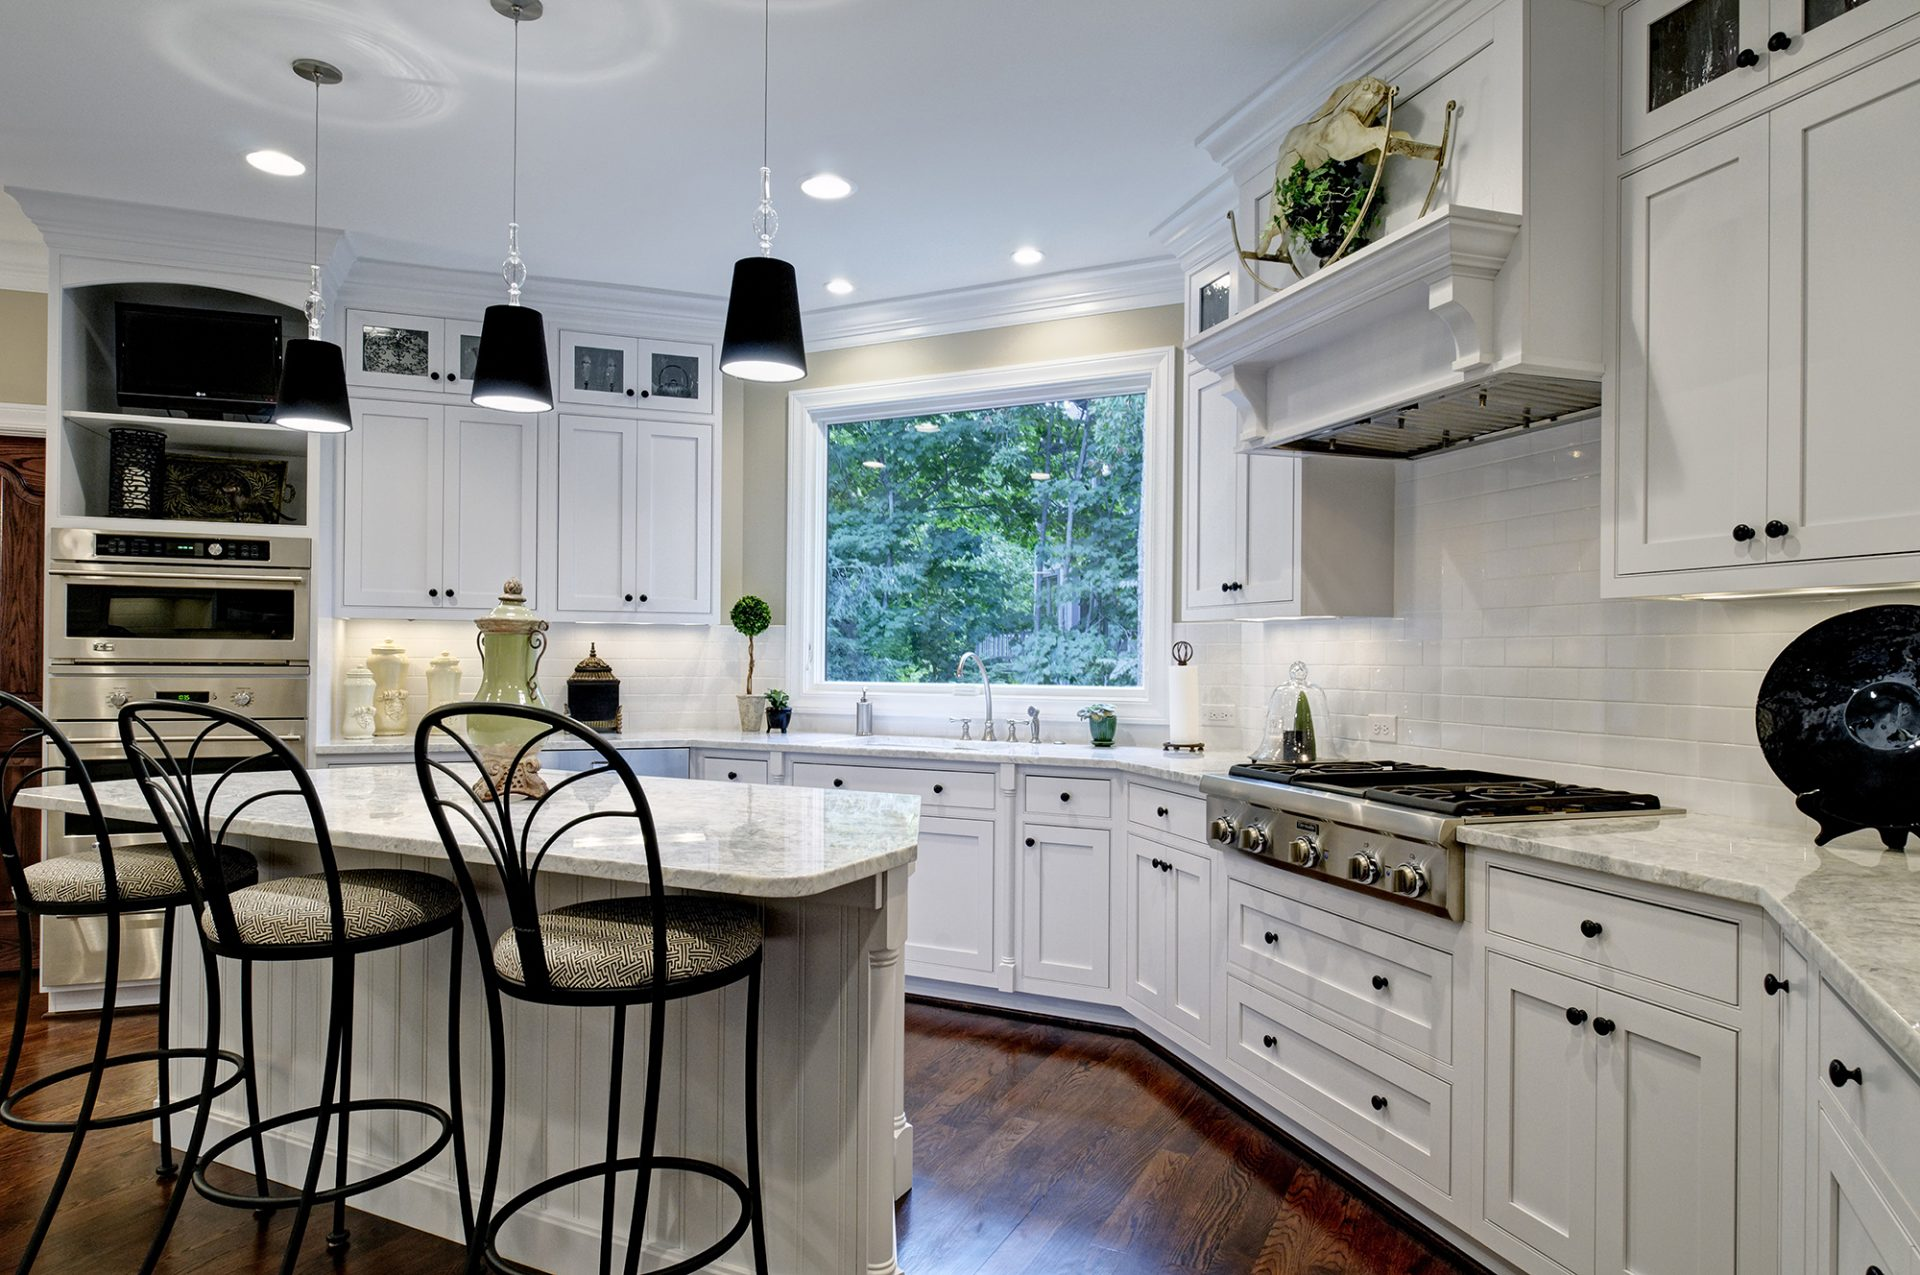 Kitchen, Westerville, Dave Fox, Remodel, white cabinets, black accents, subway tile, gas range, island, bead board, double oven, wood floors, quartz countertop